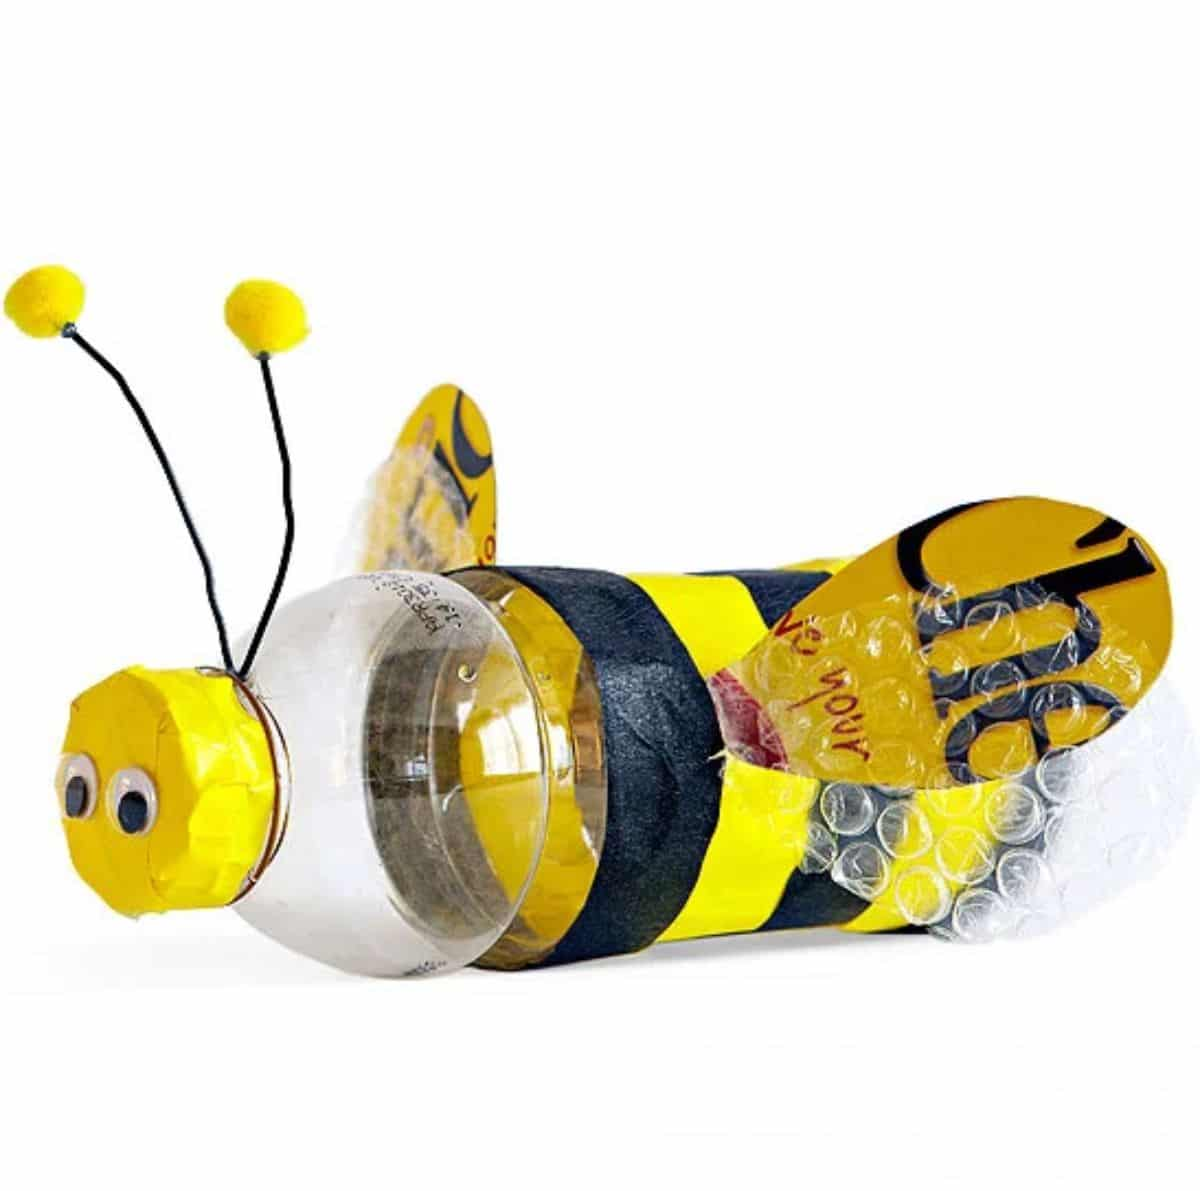 a water bottle is decorated with black and yellow tissue paper to look like a bumble bee.